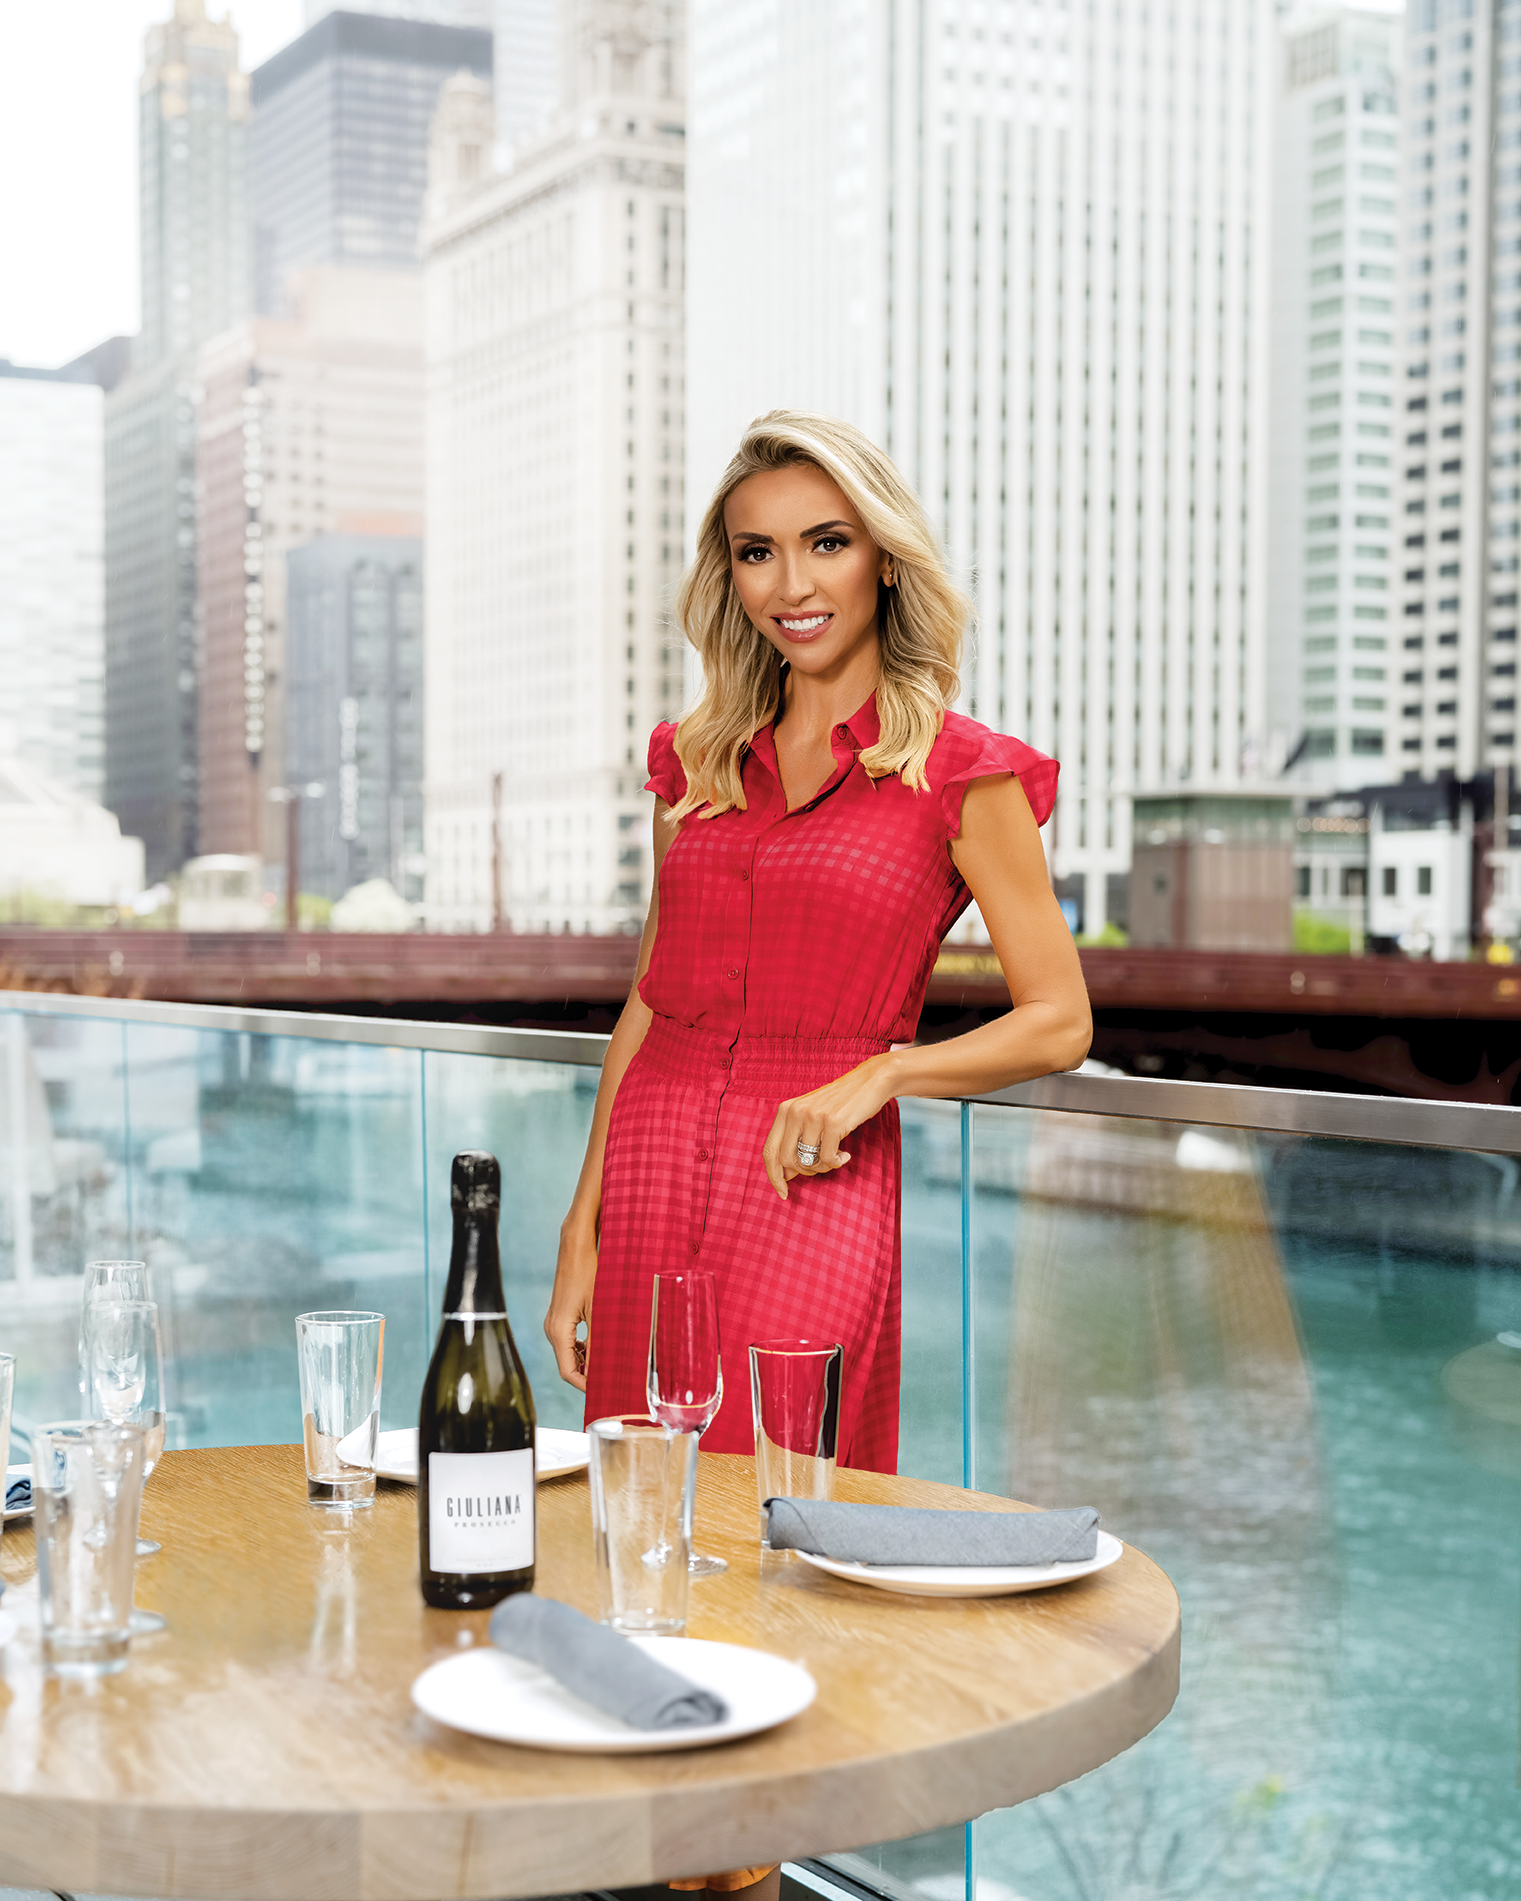 Rooftop city backdrop picture of Giuliana Rancic.